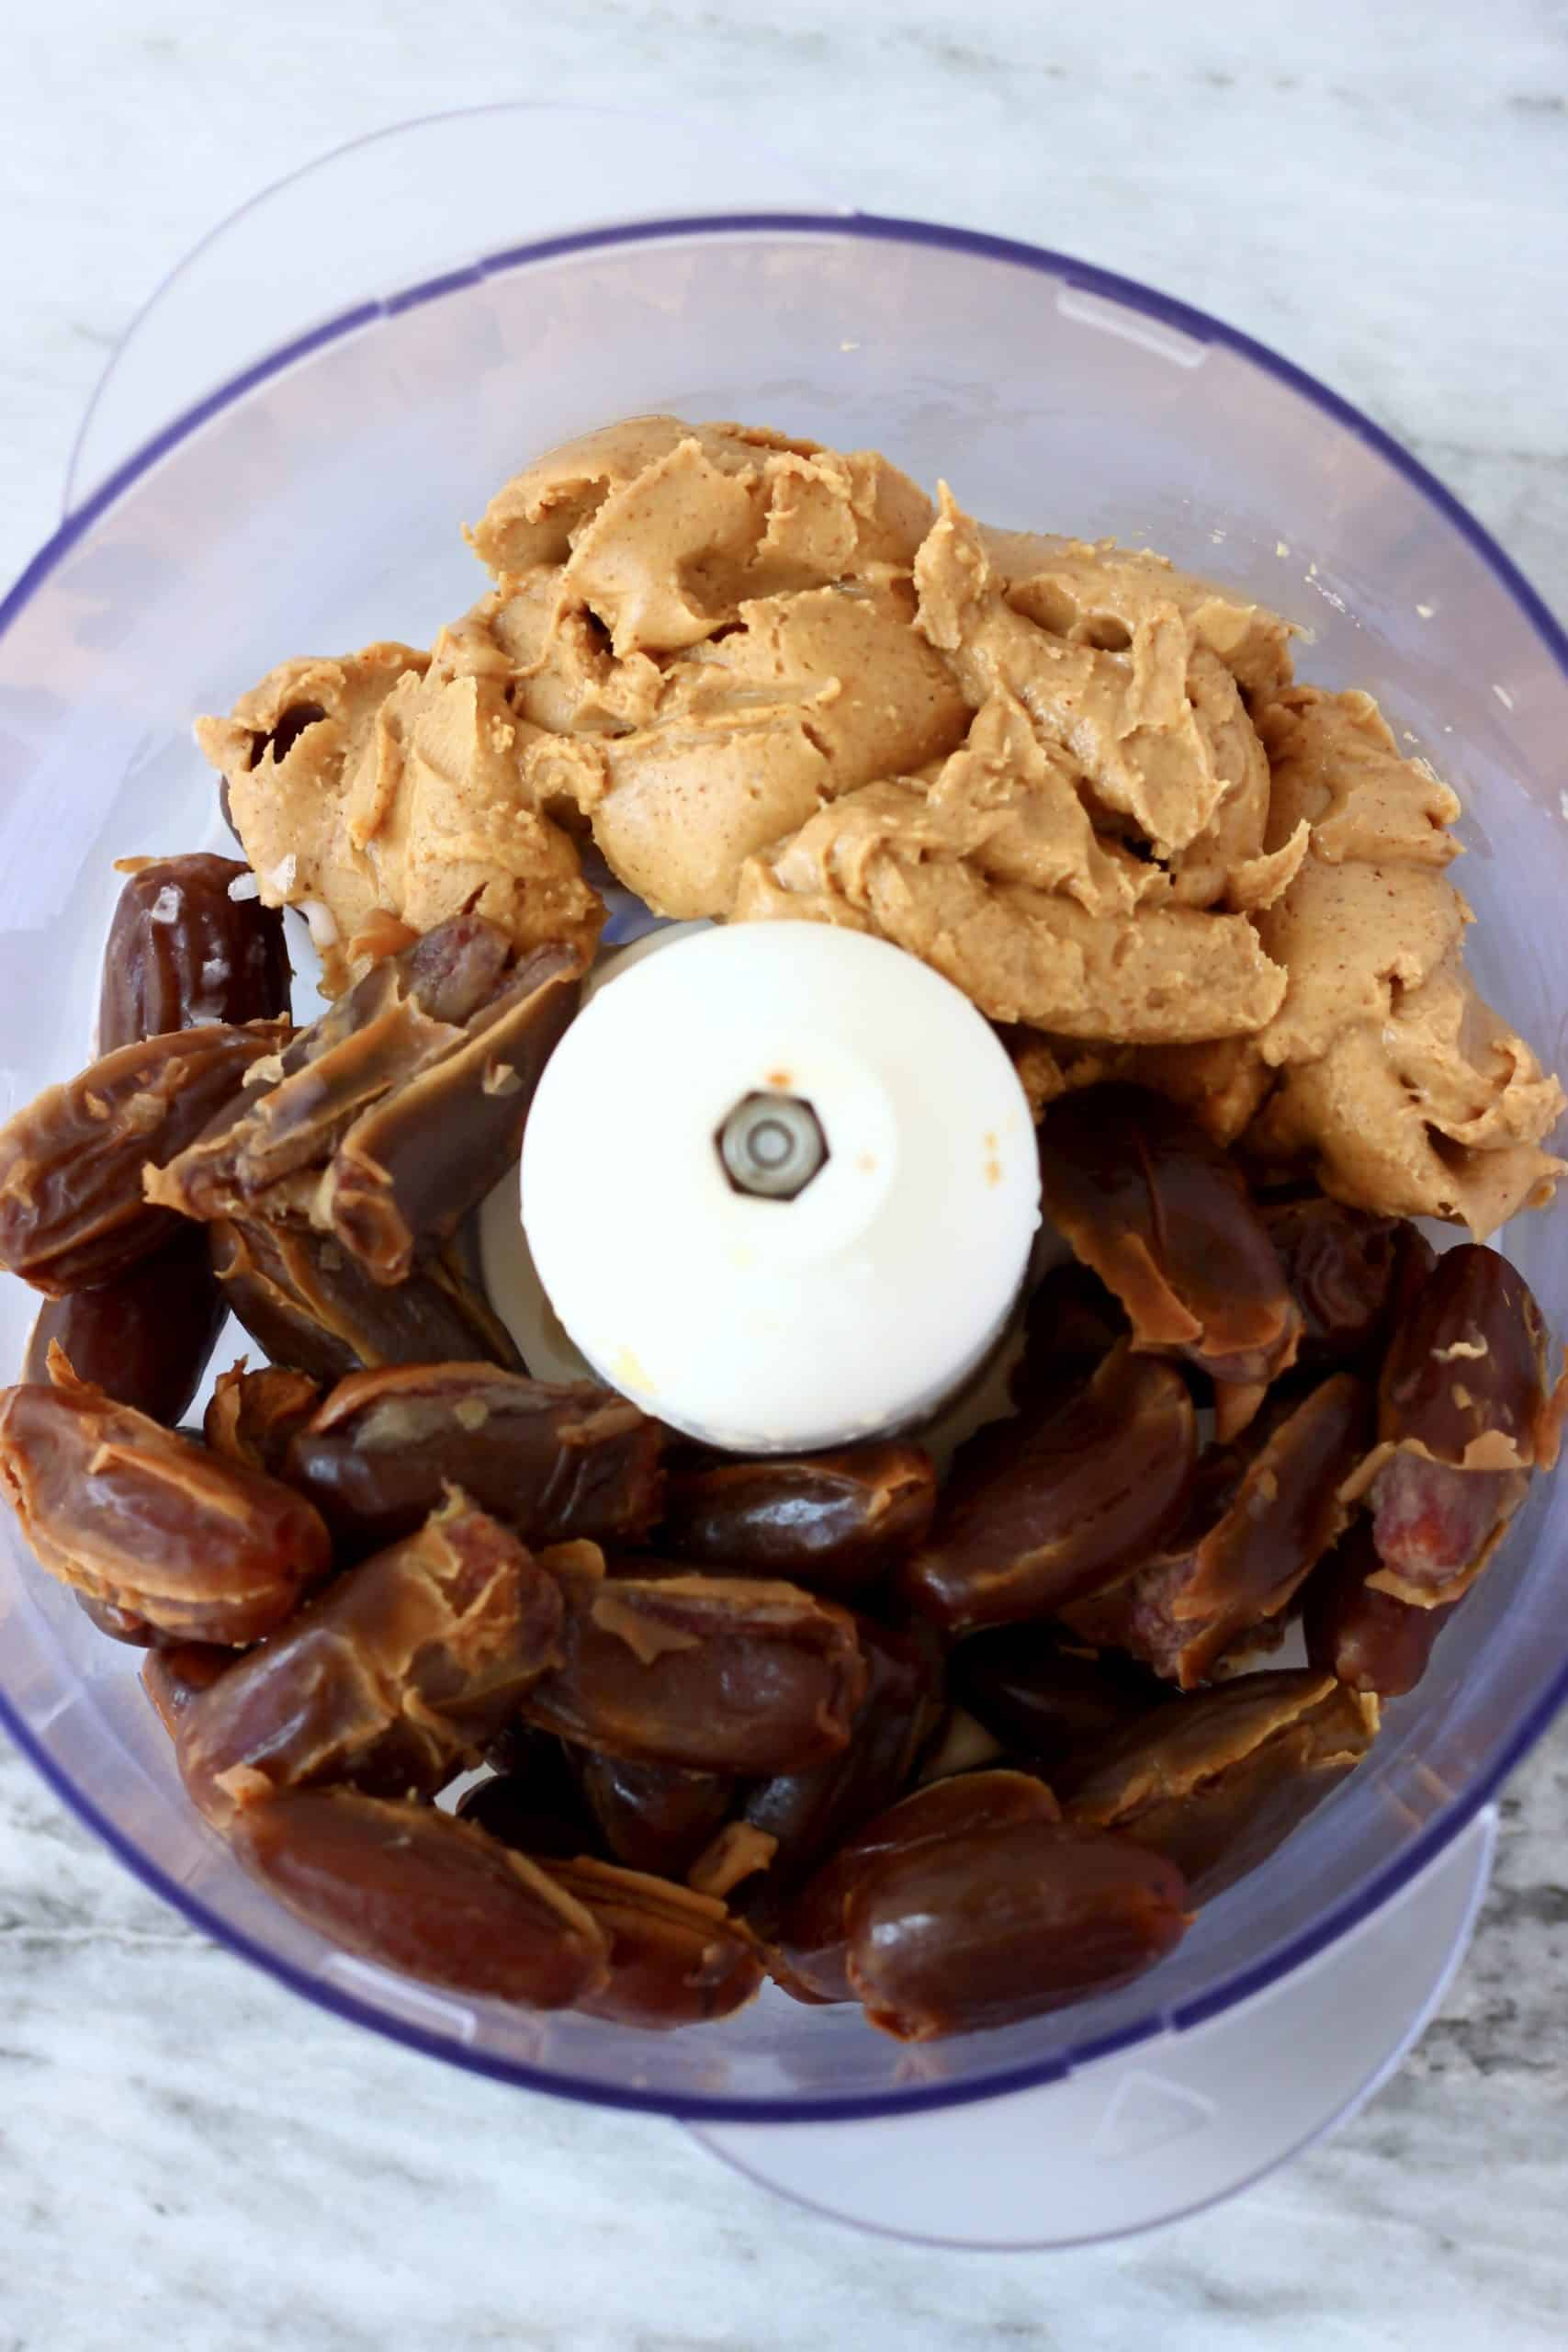 Dates and almond butter in a food processor